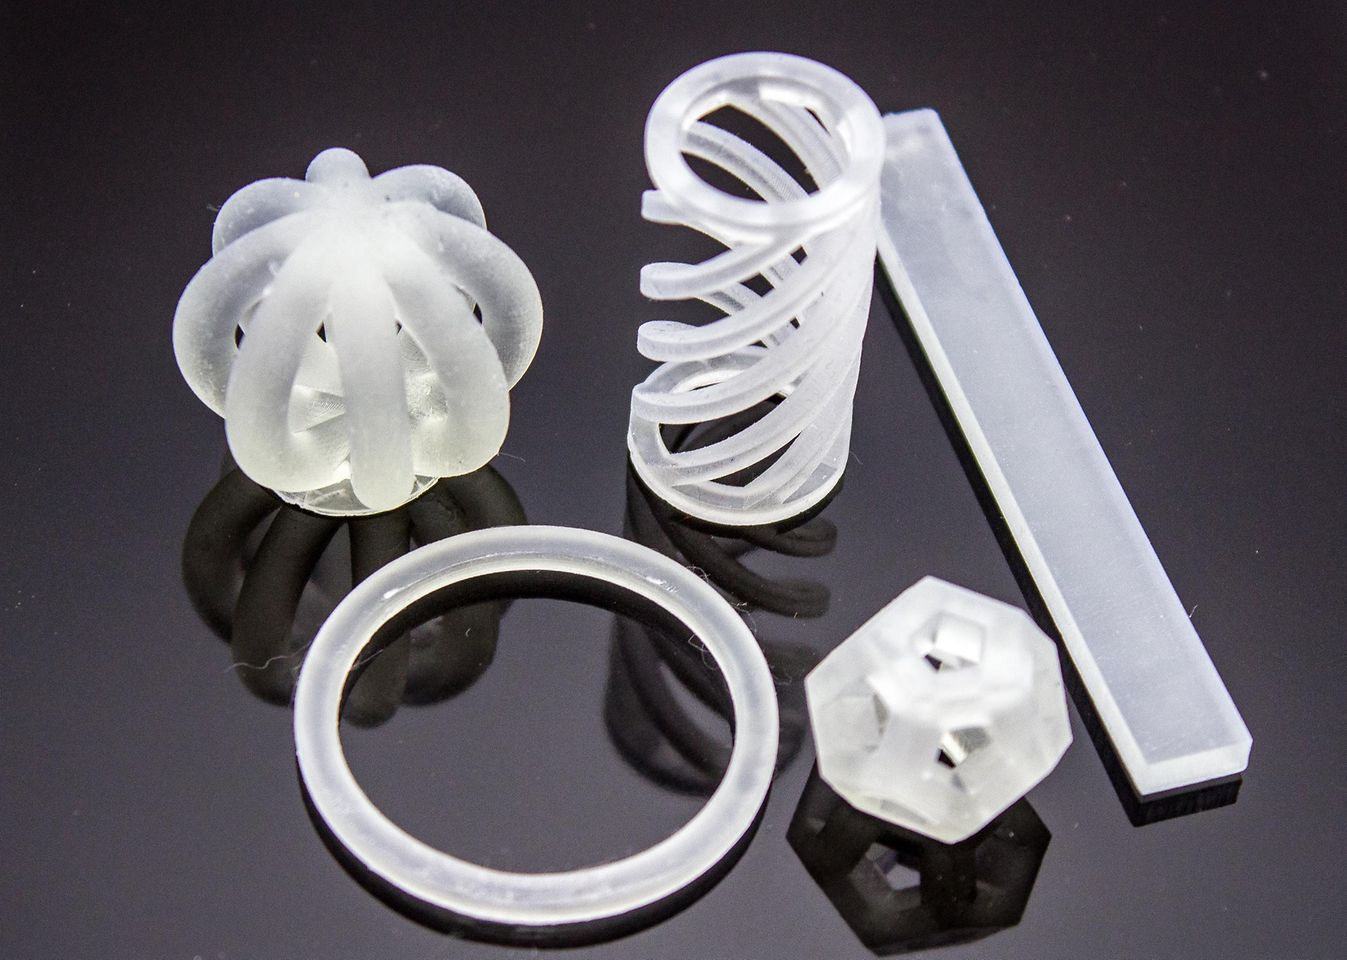 3D printing applications